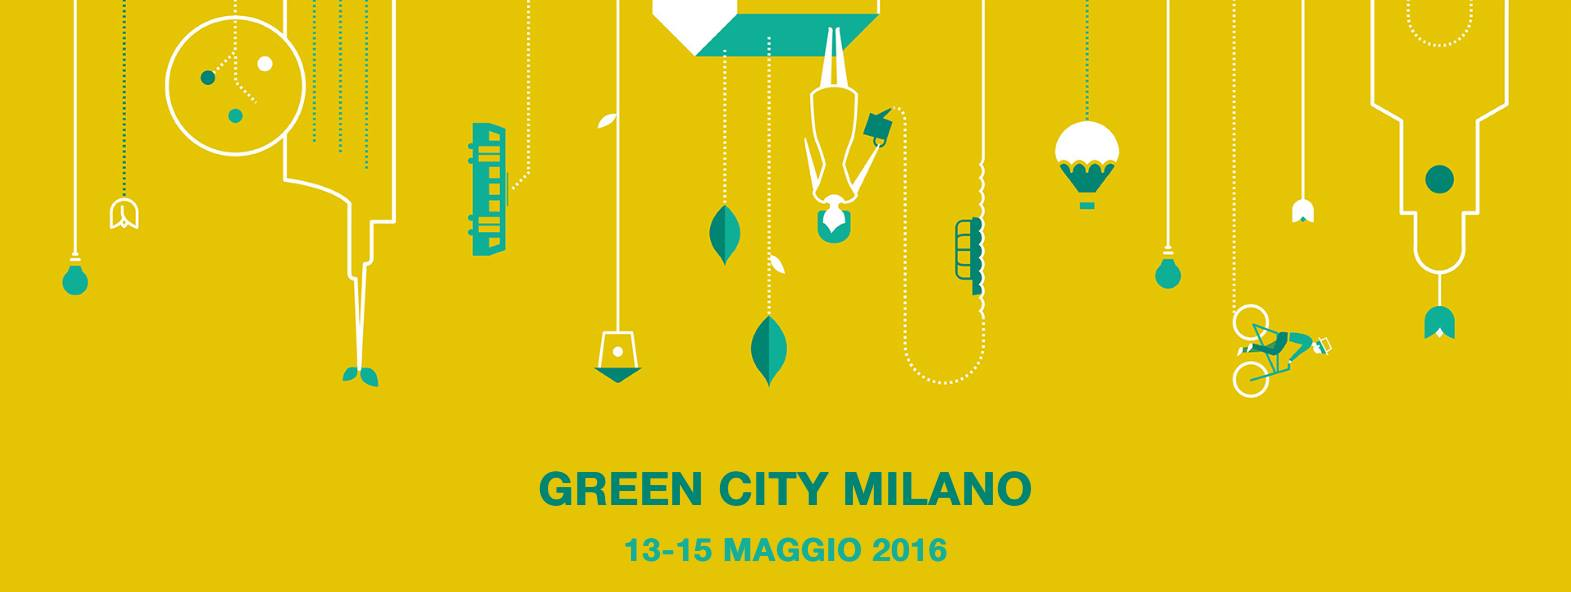 green city locandina generica